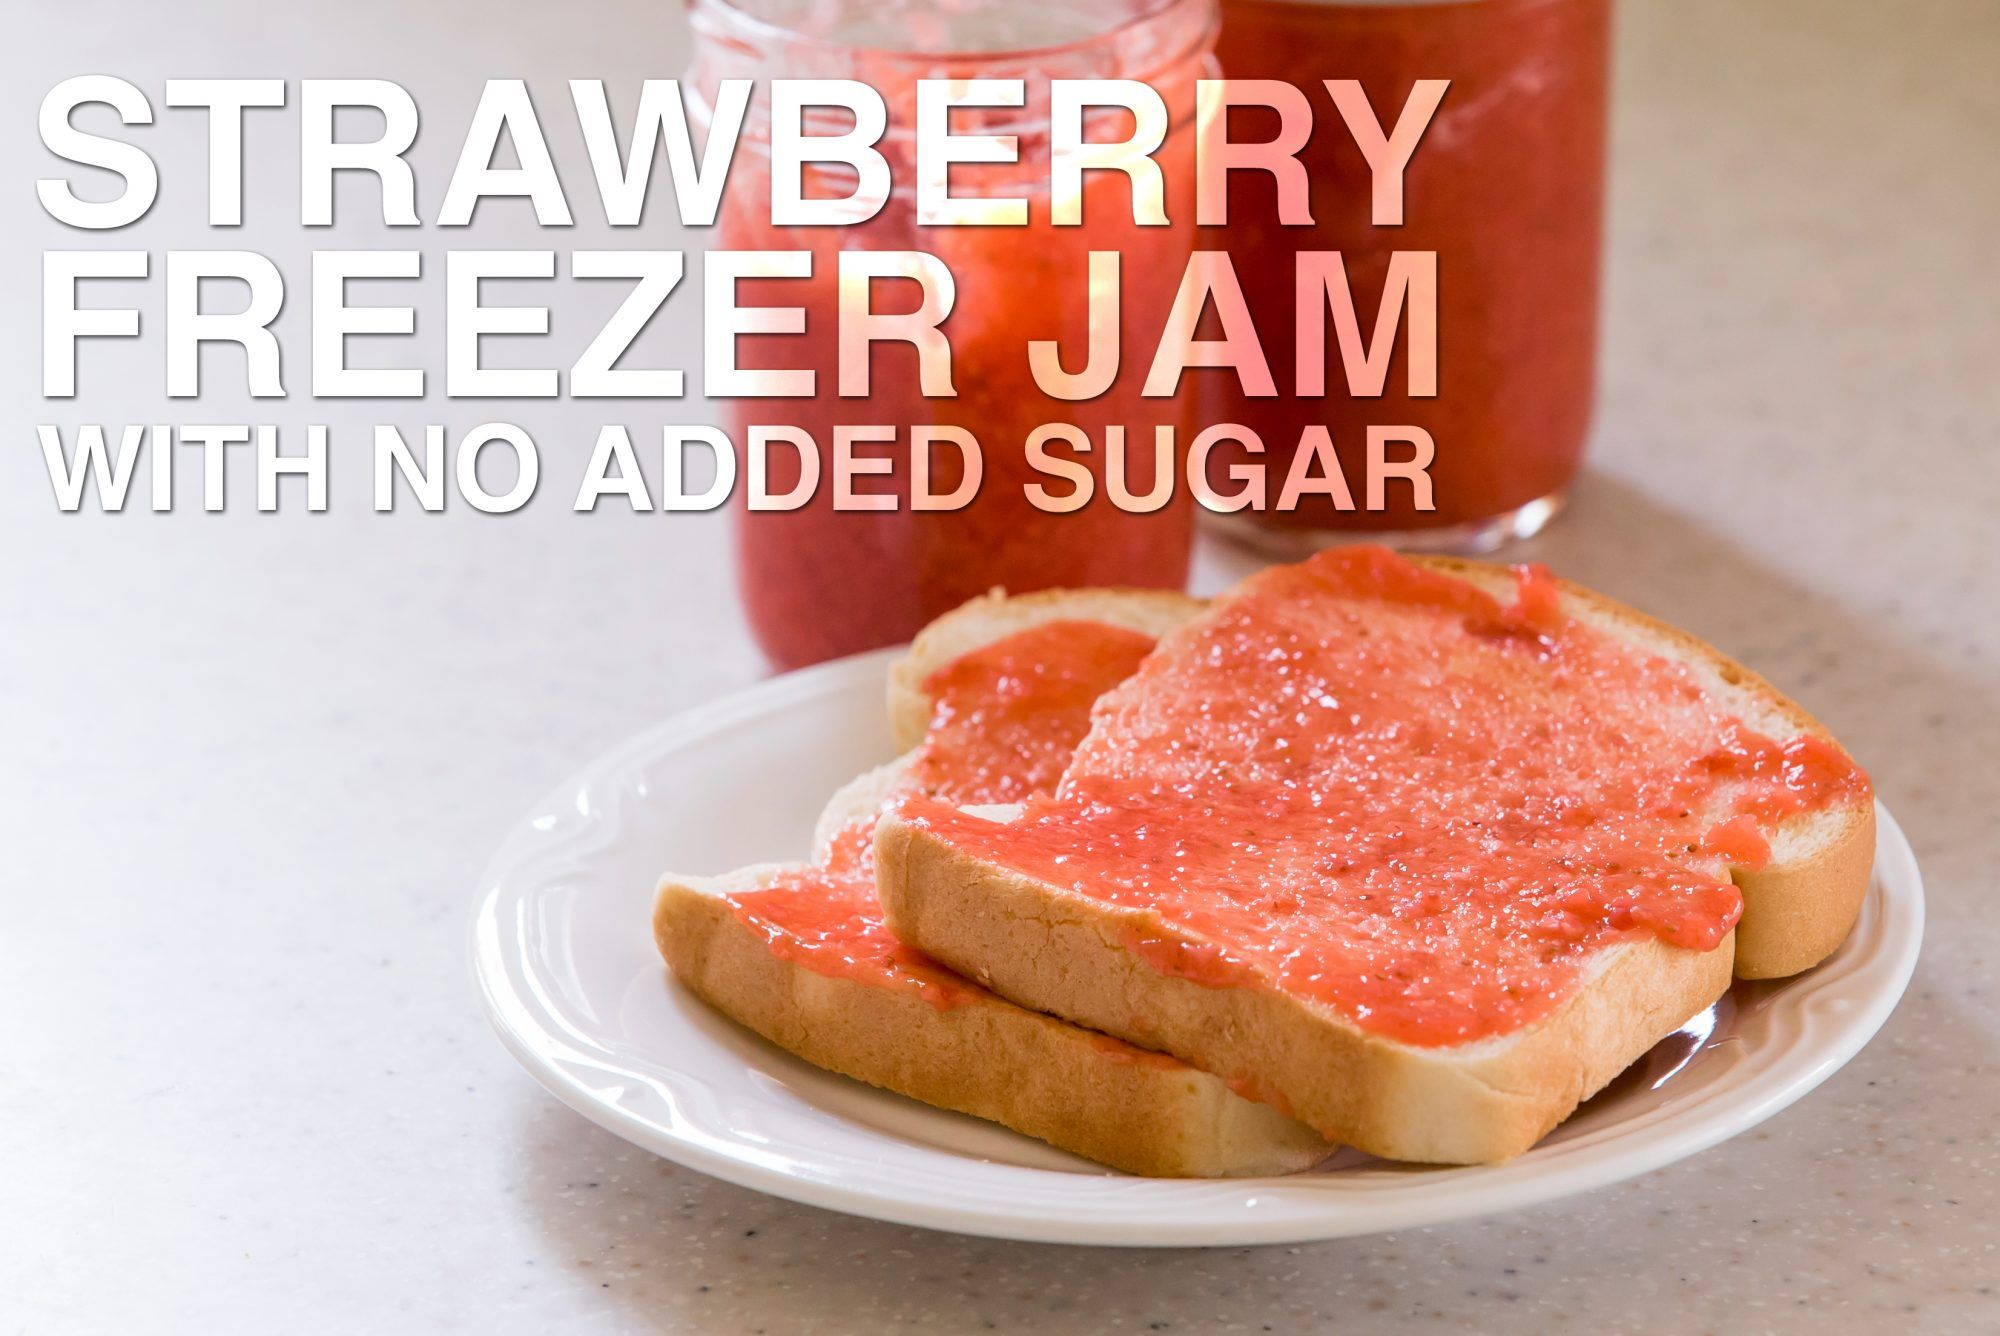 Sugar-Free Strawberry Freezer Jam